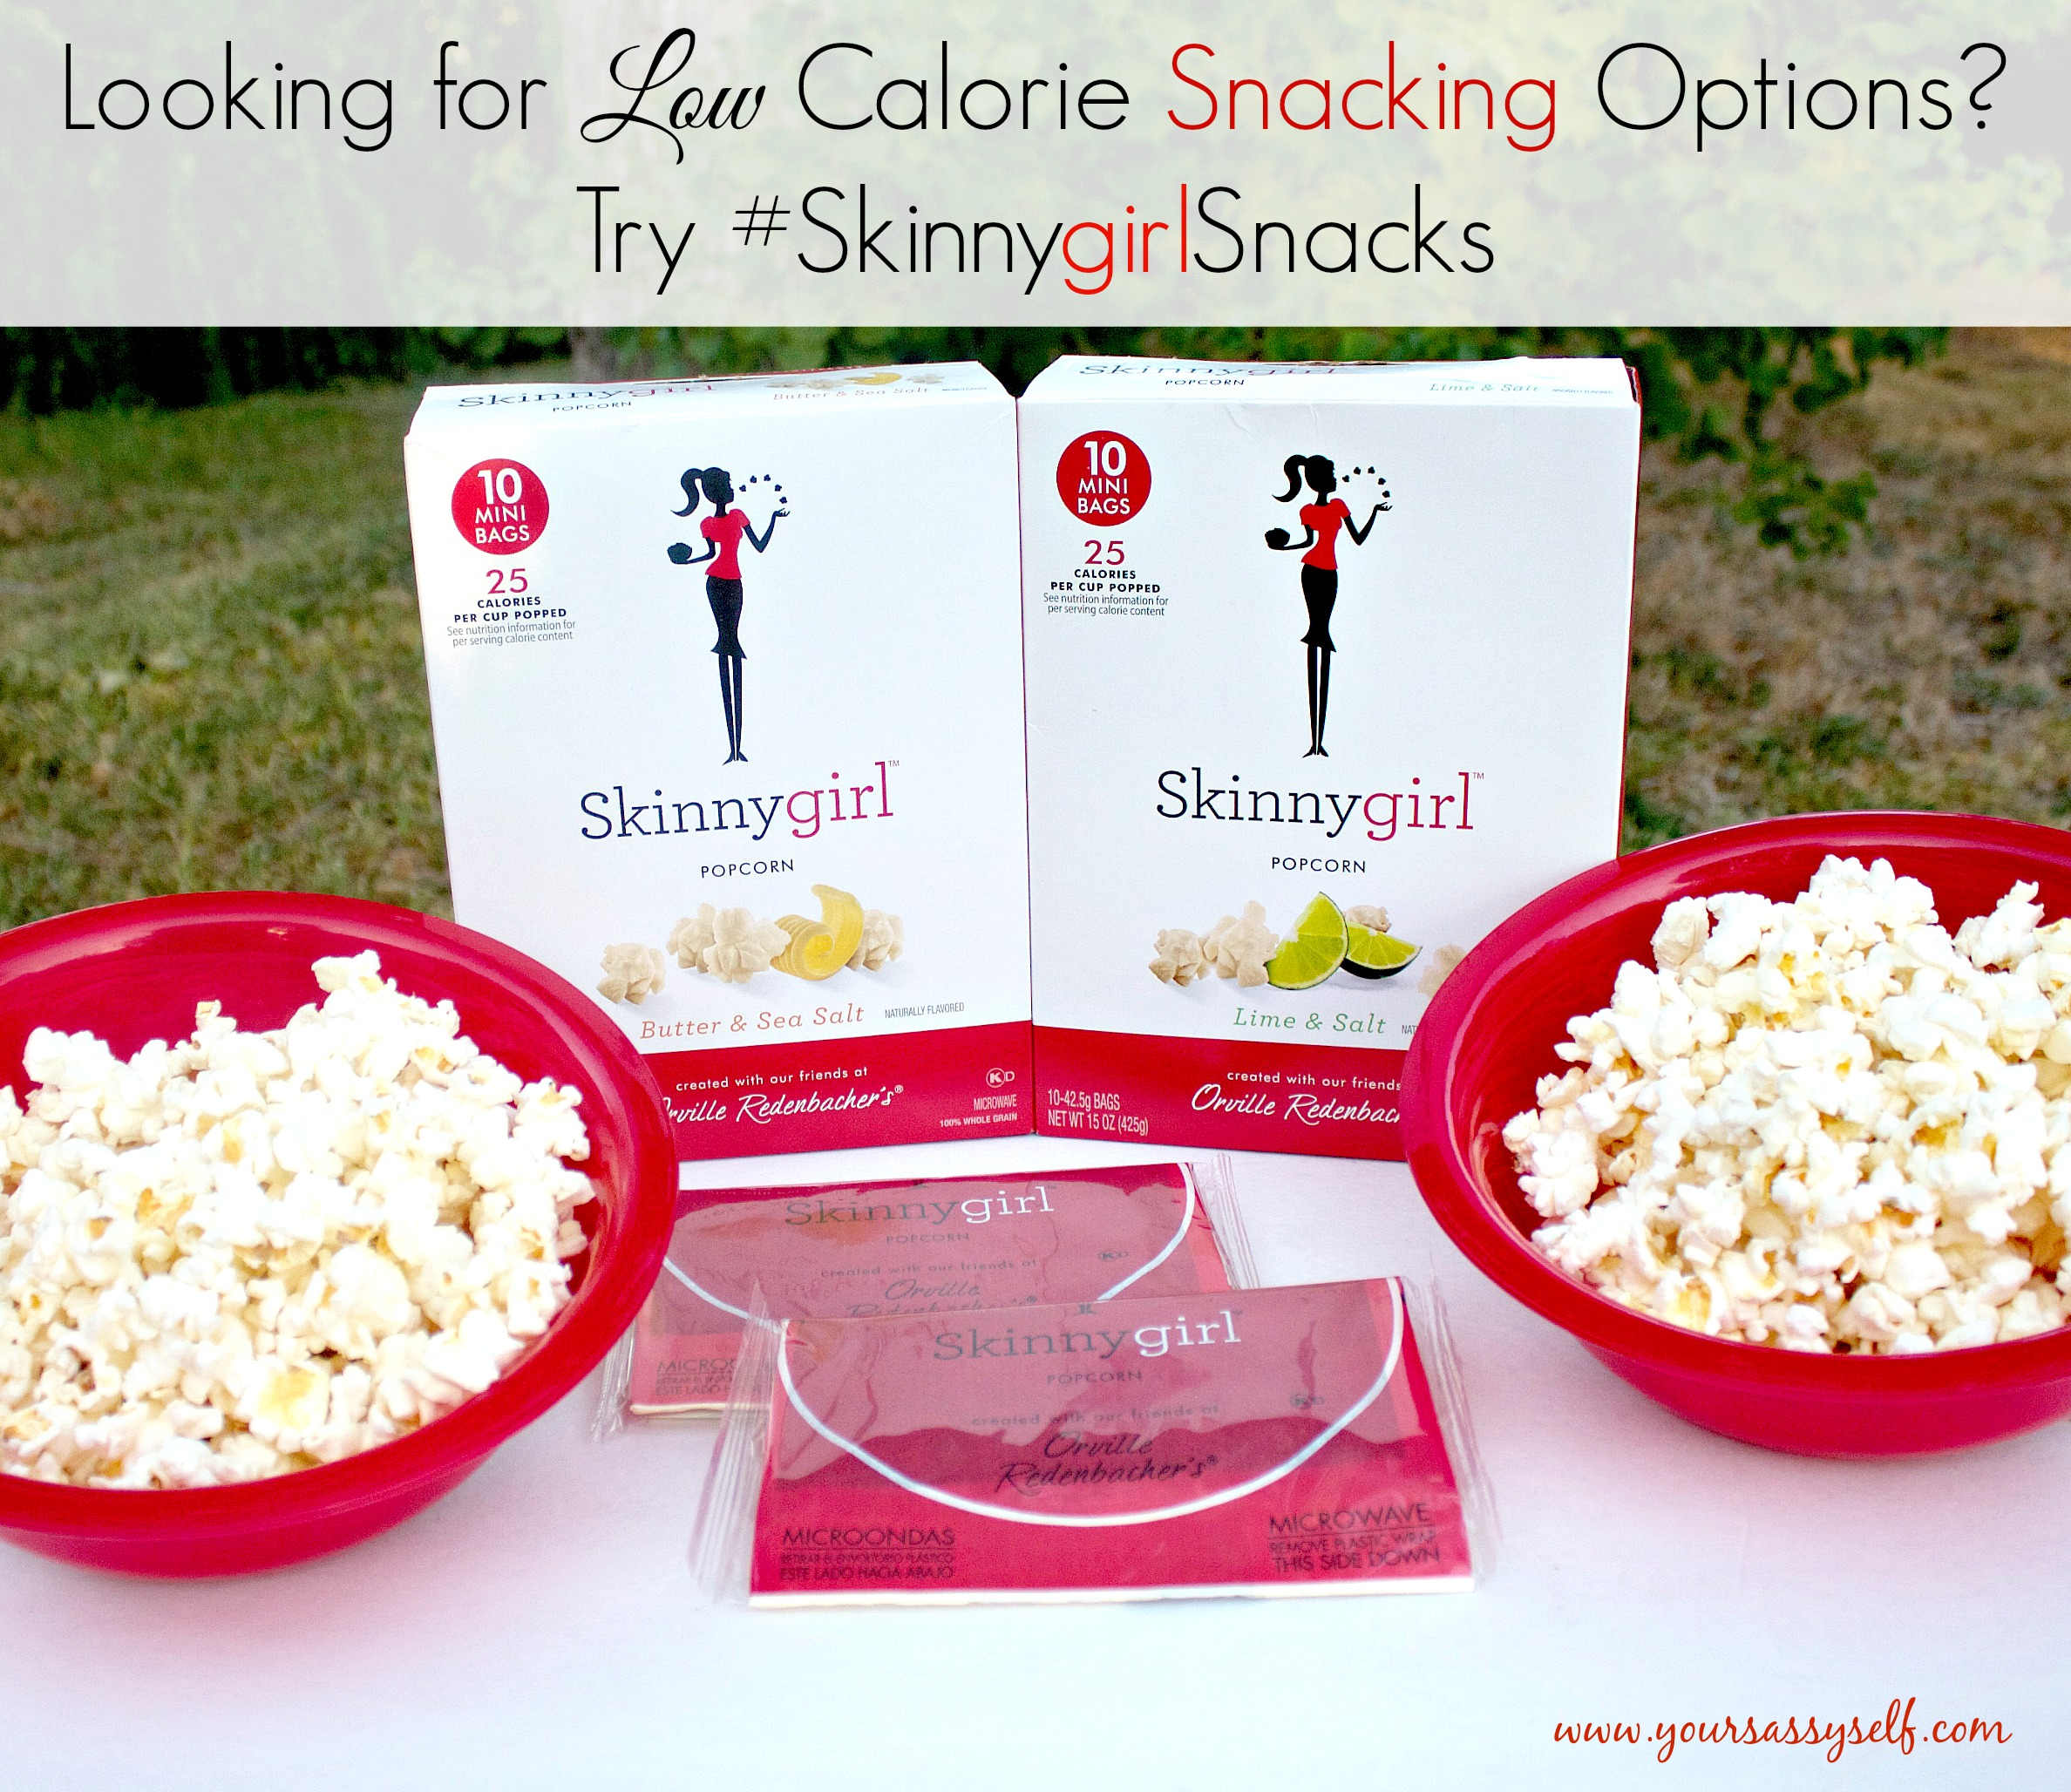 Looking for Low Calorie Snacking Options? Try #SkinnyGirlSnacks